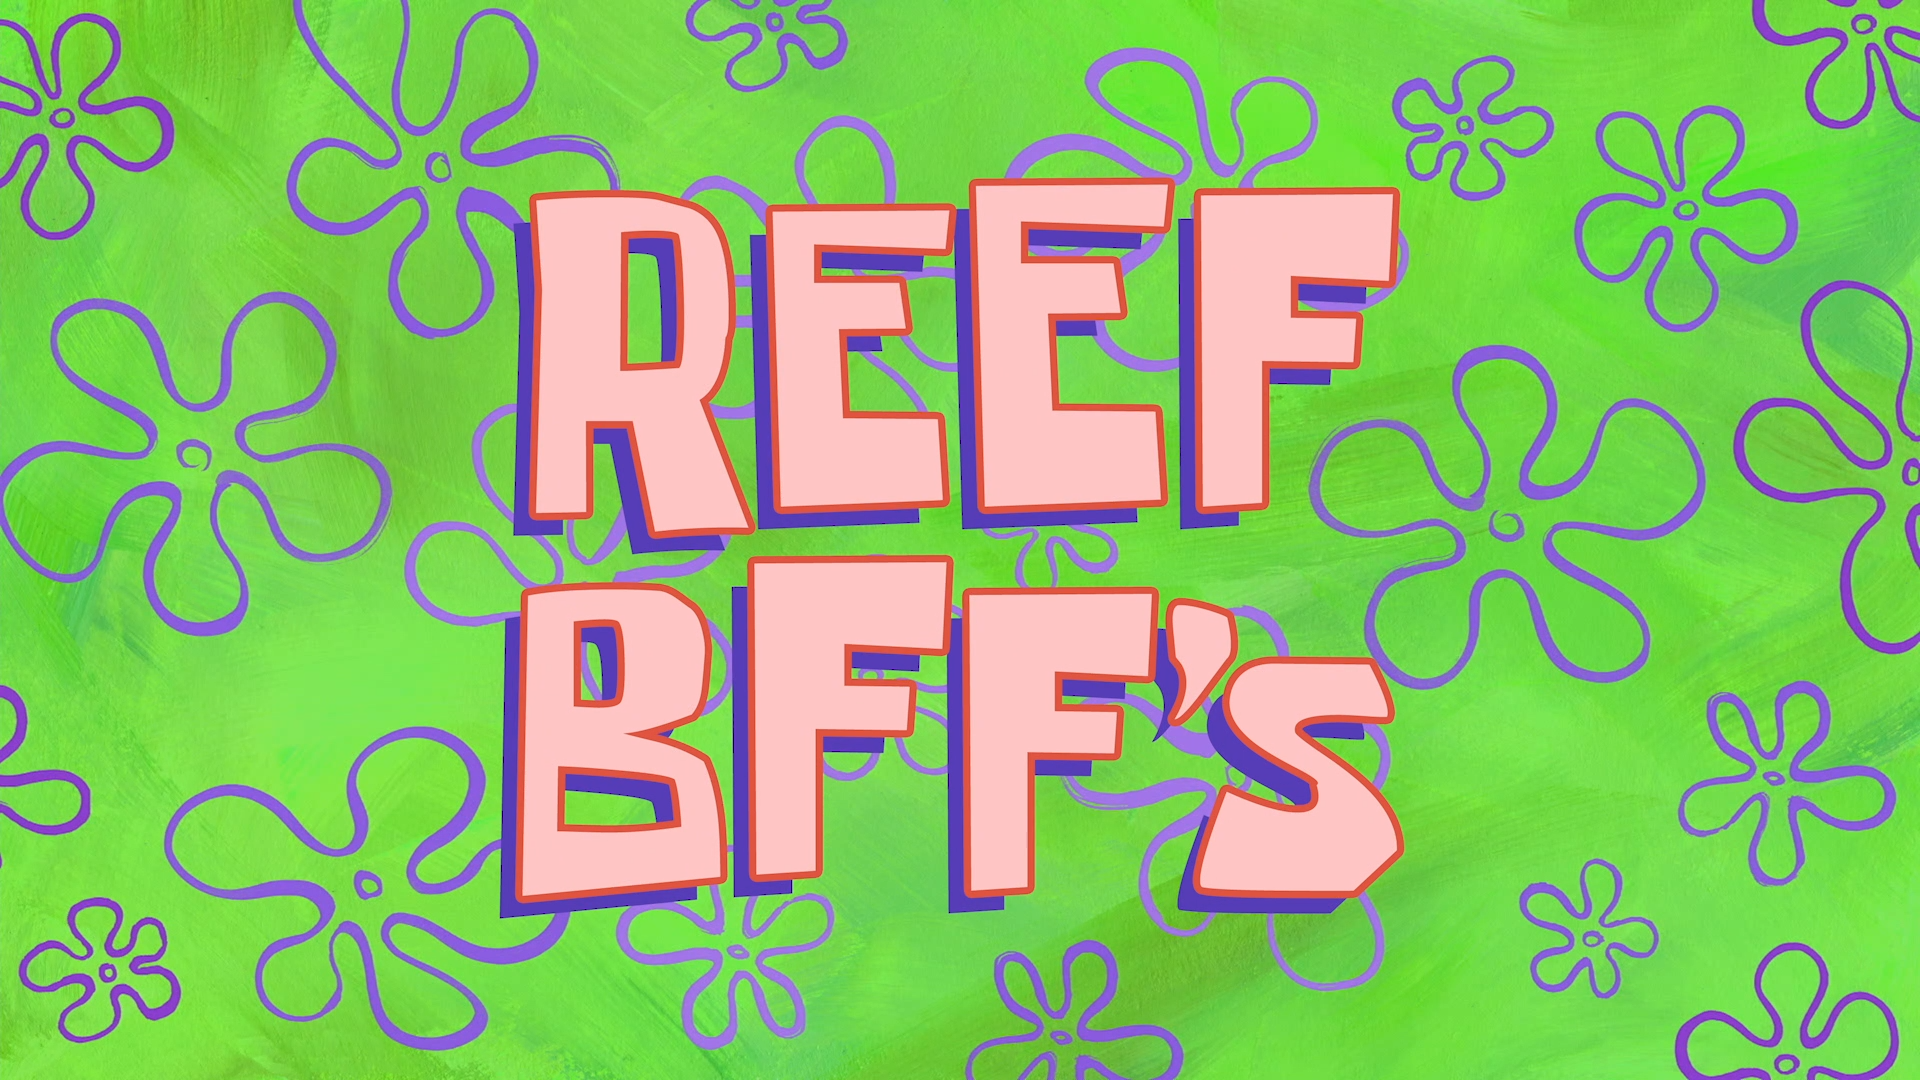 Reef BFF's